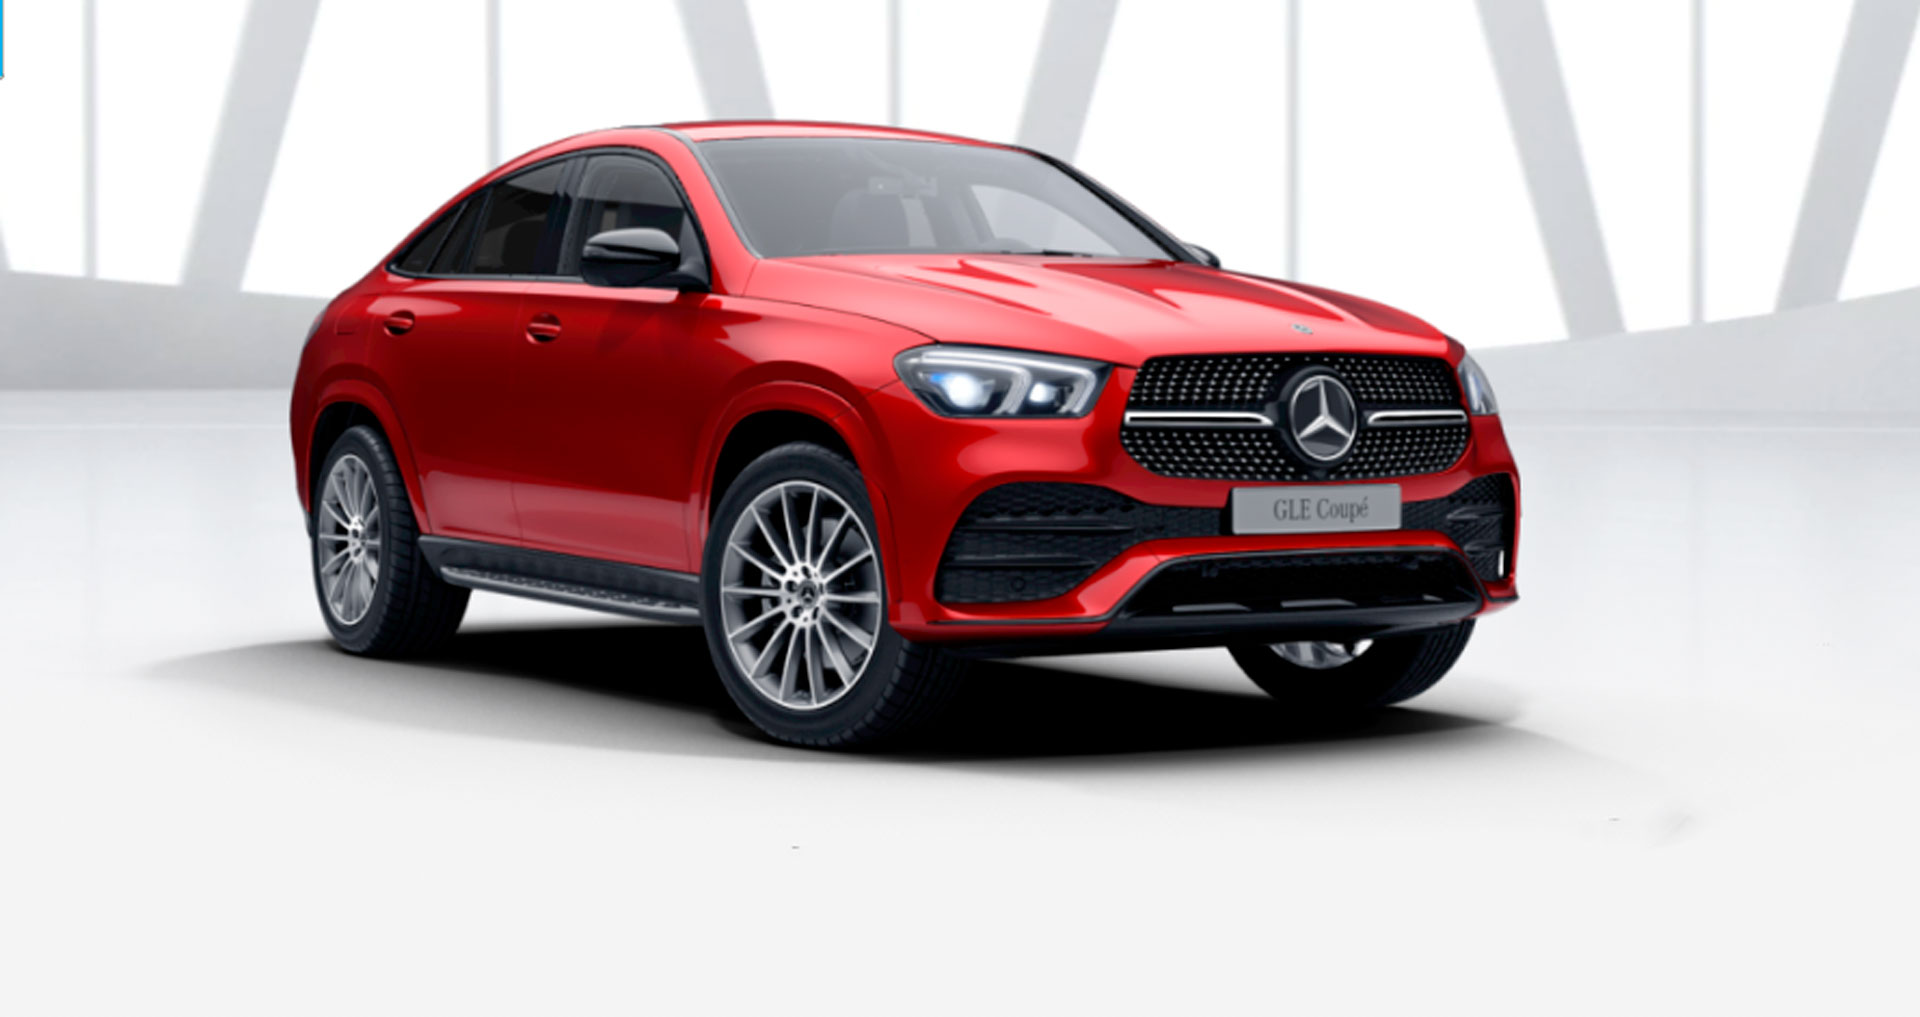 Mercedes-Benz GLE Coupe 0152600442